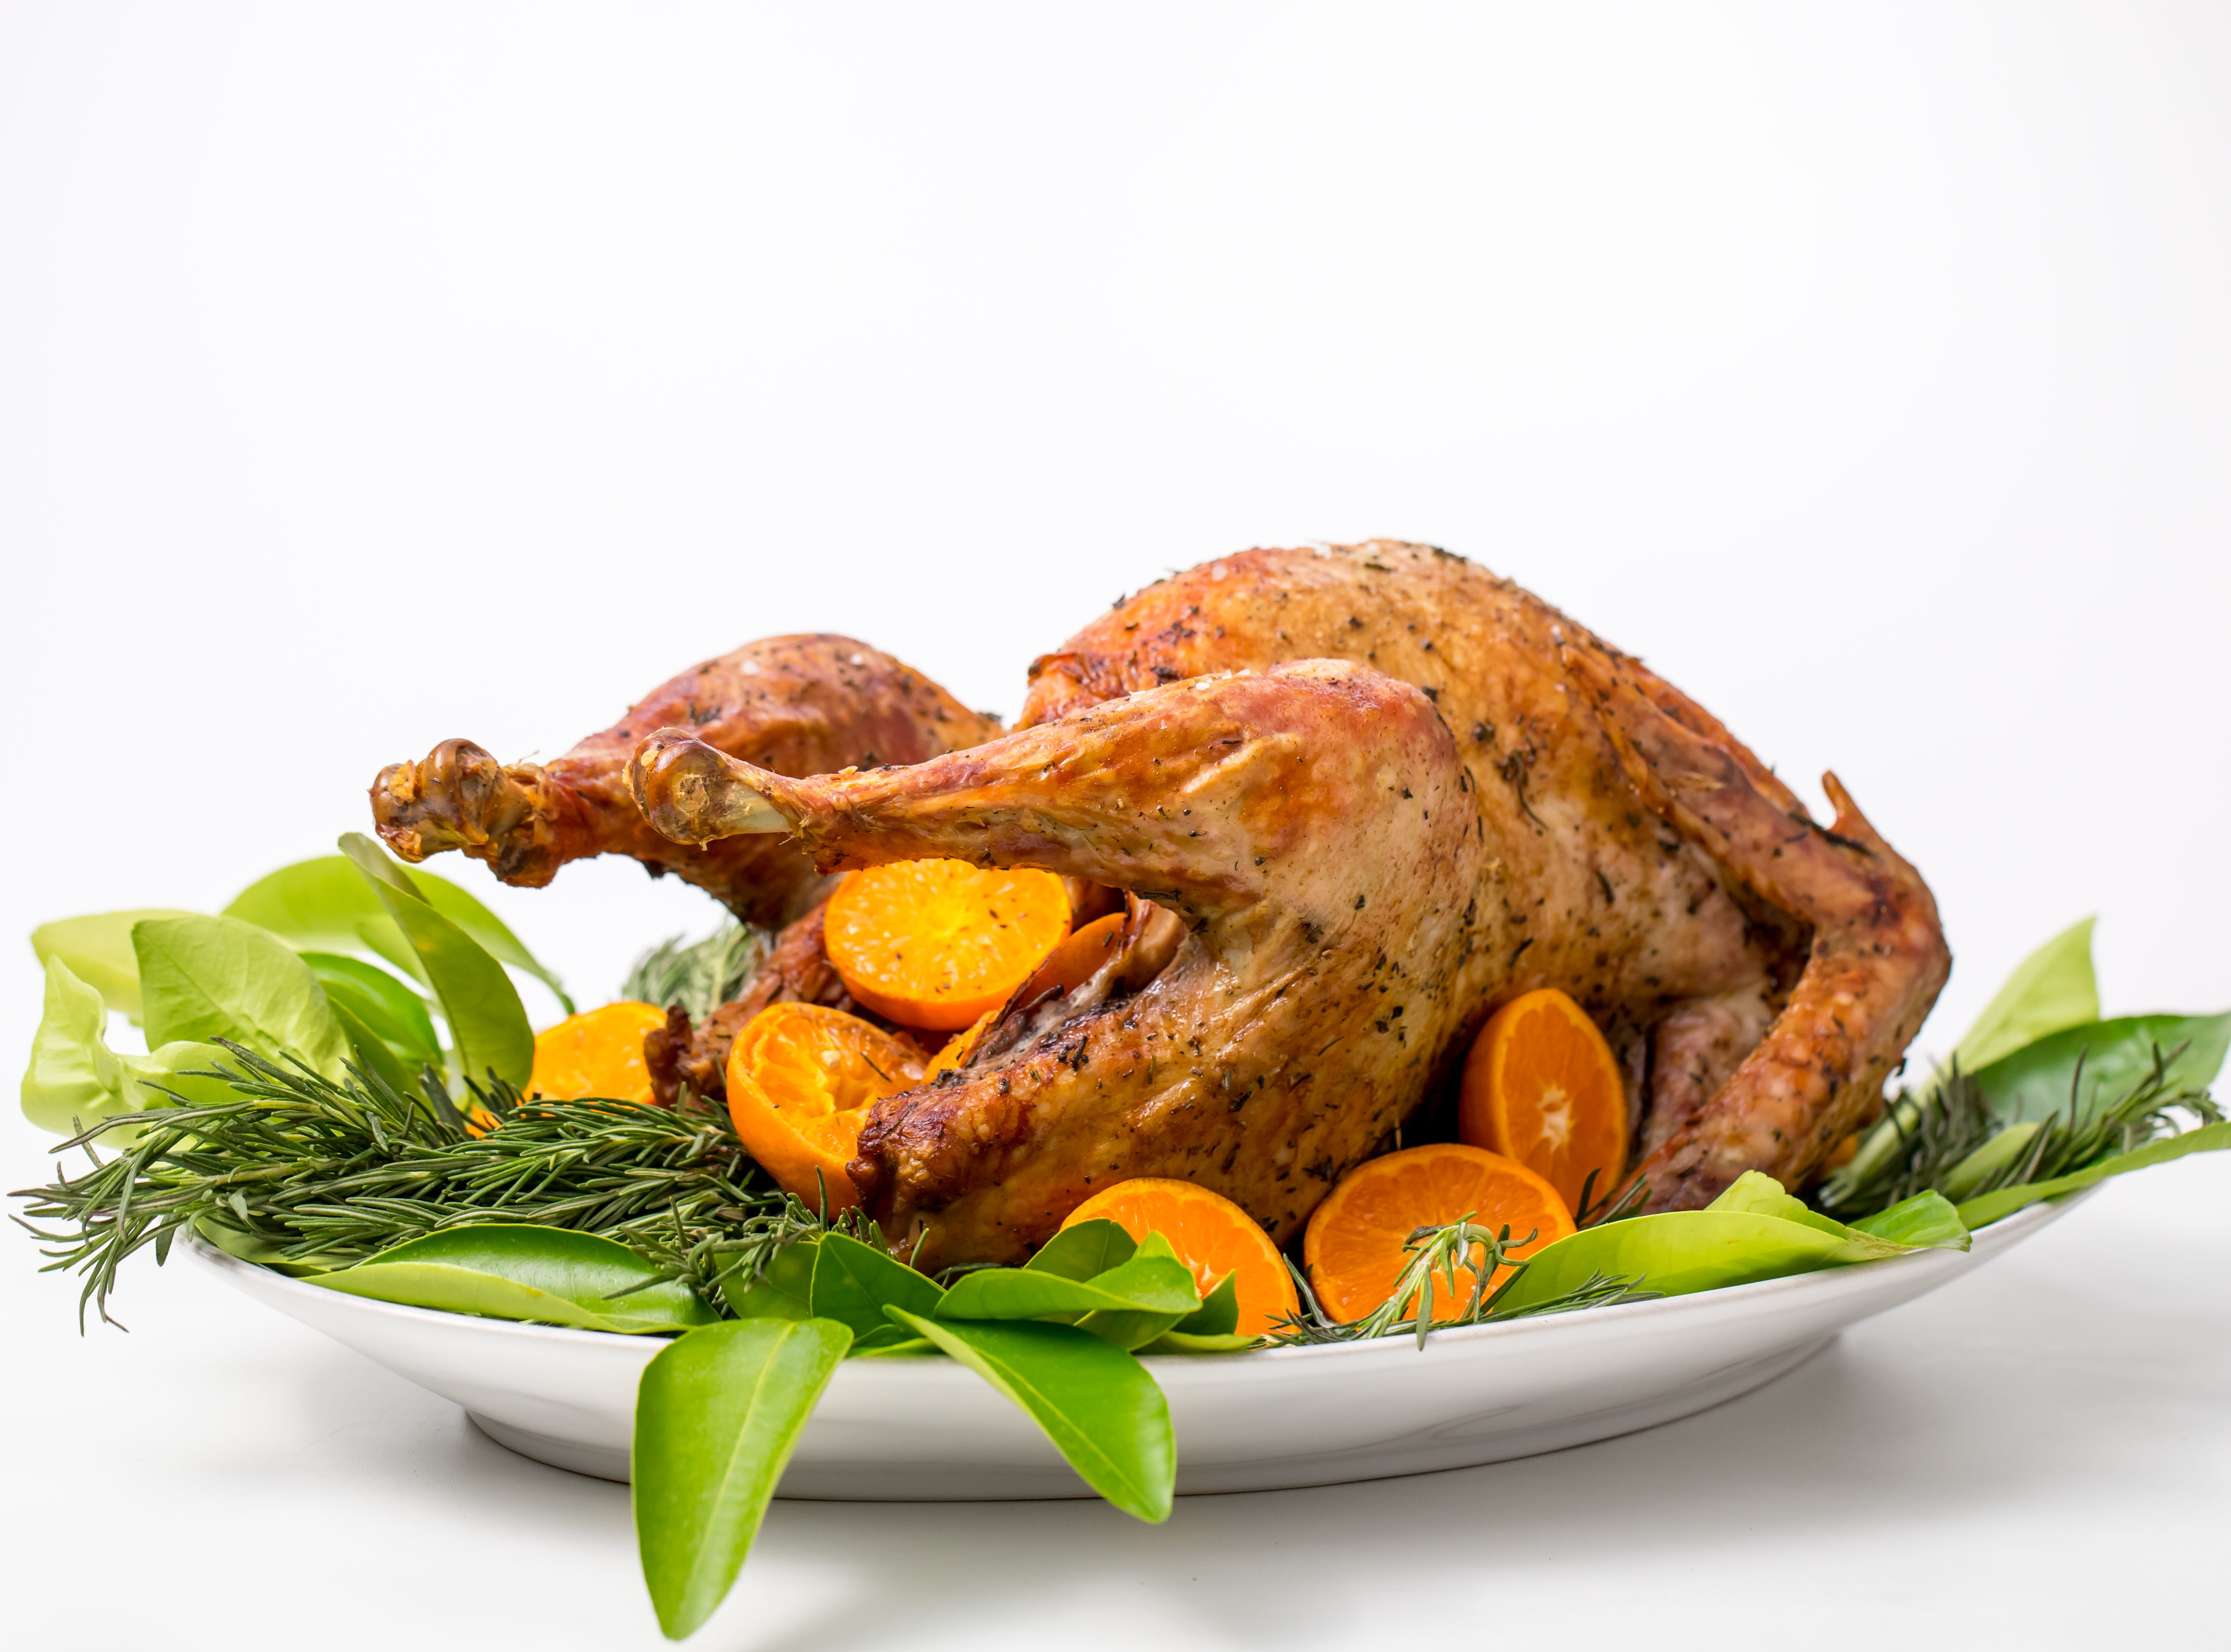 grilled turkey with rosemary butter